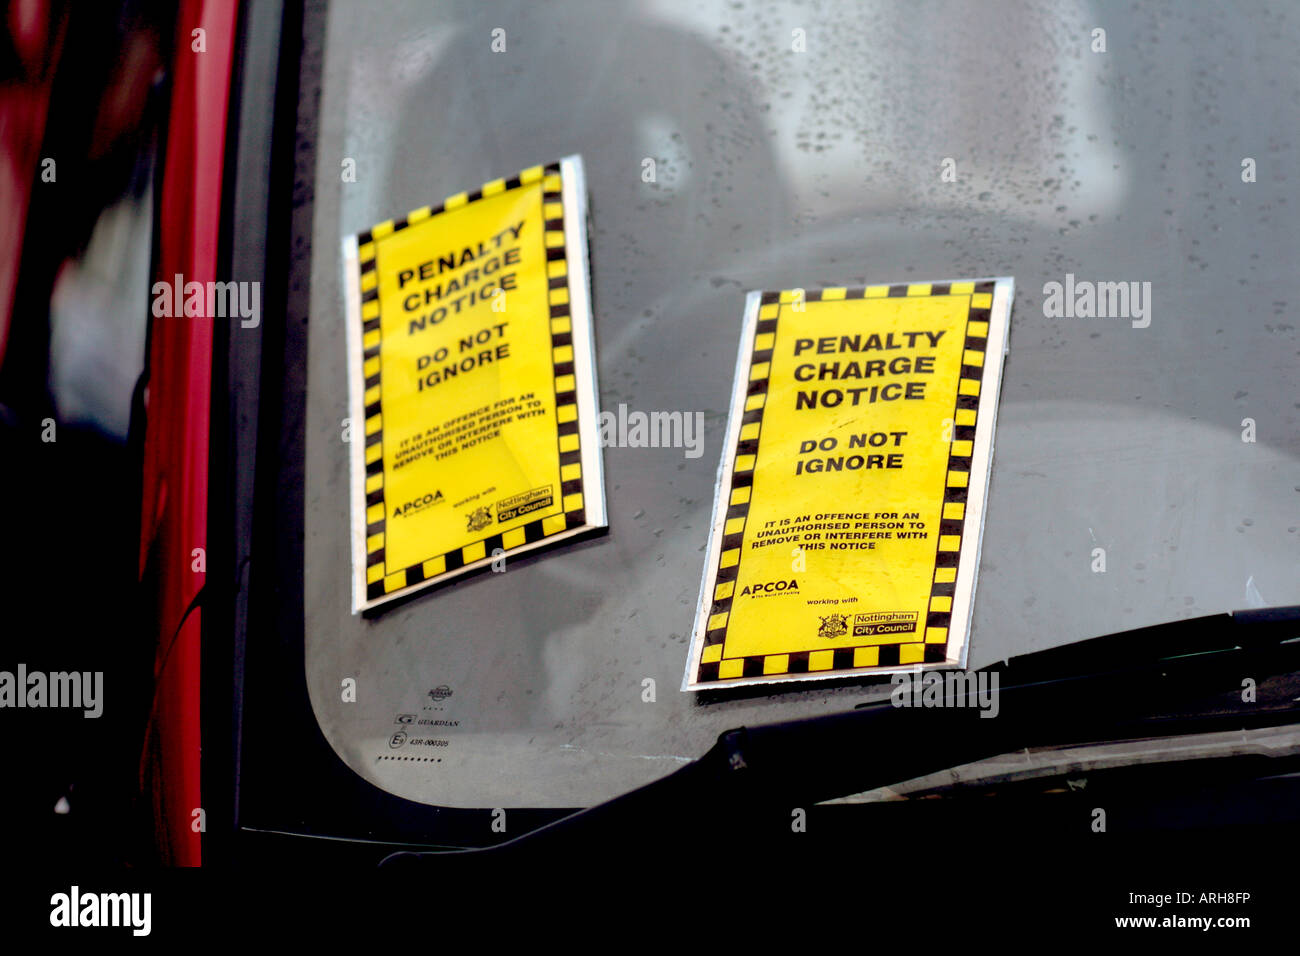 Parking Tickets. Penalty Charge Notices.  Not one but two parking tickets fixed to the window of a parked vehicle. - Stock Image